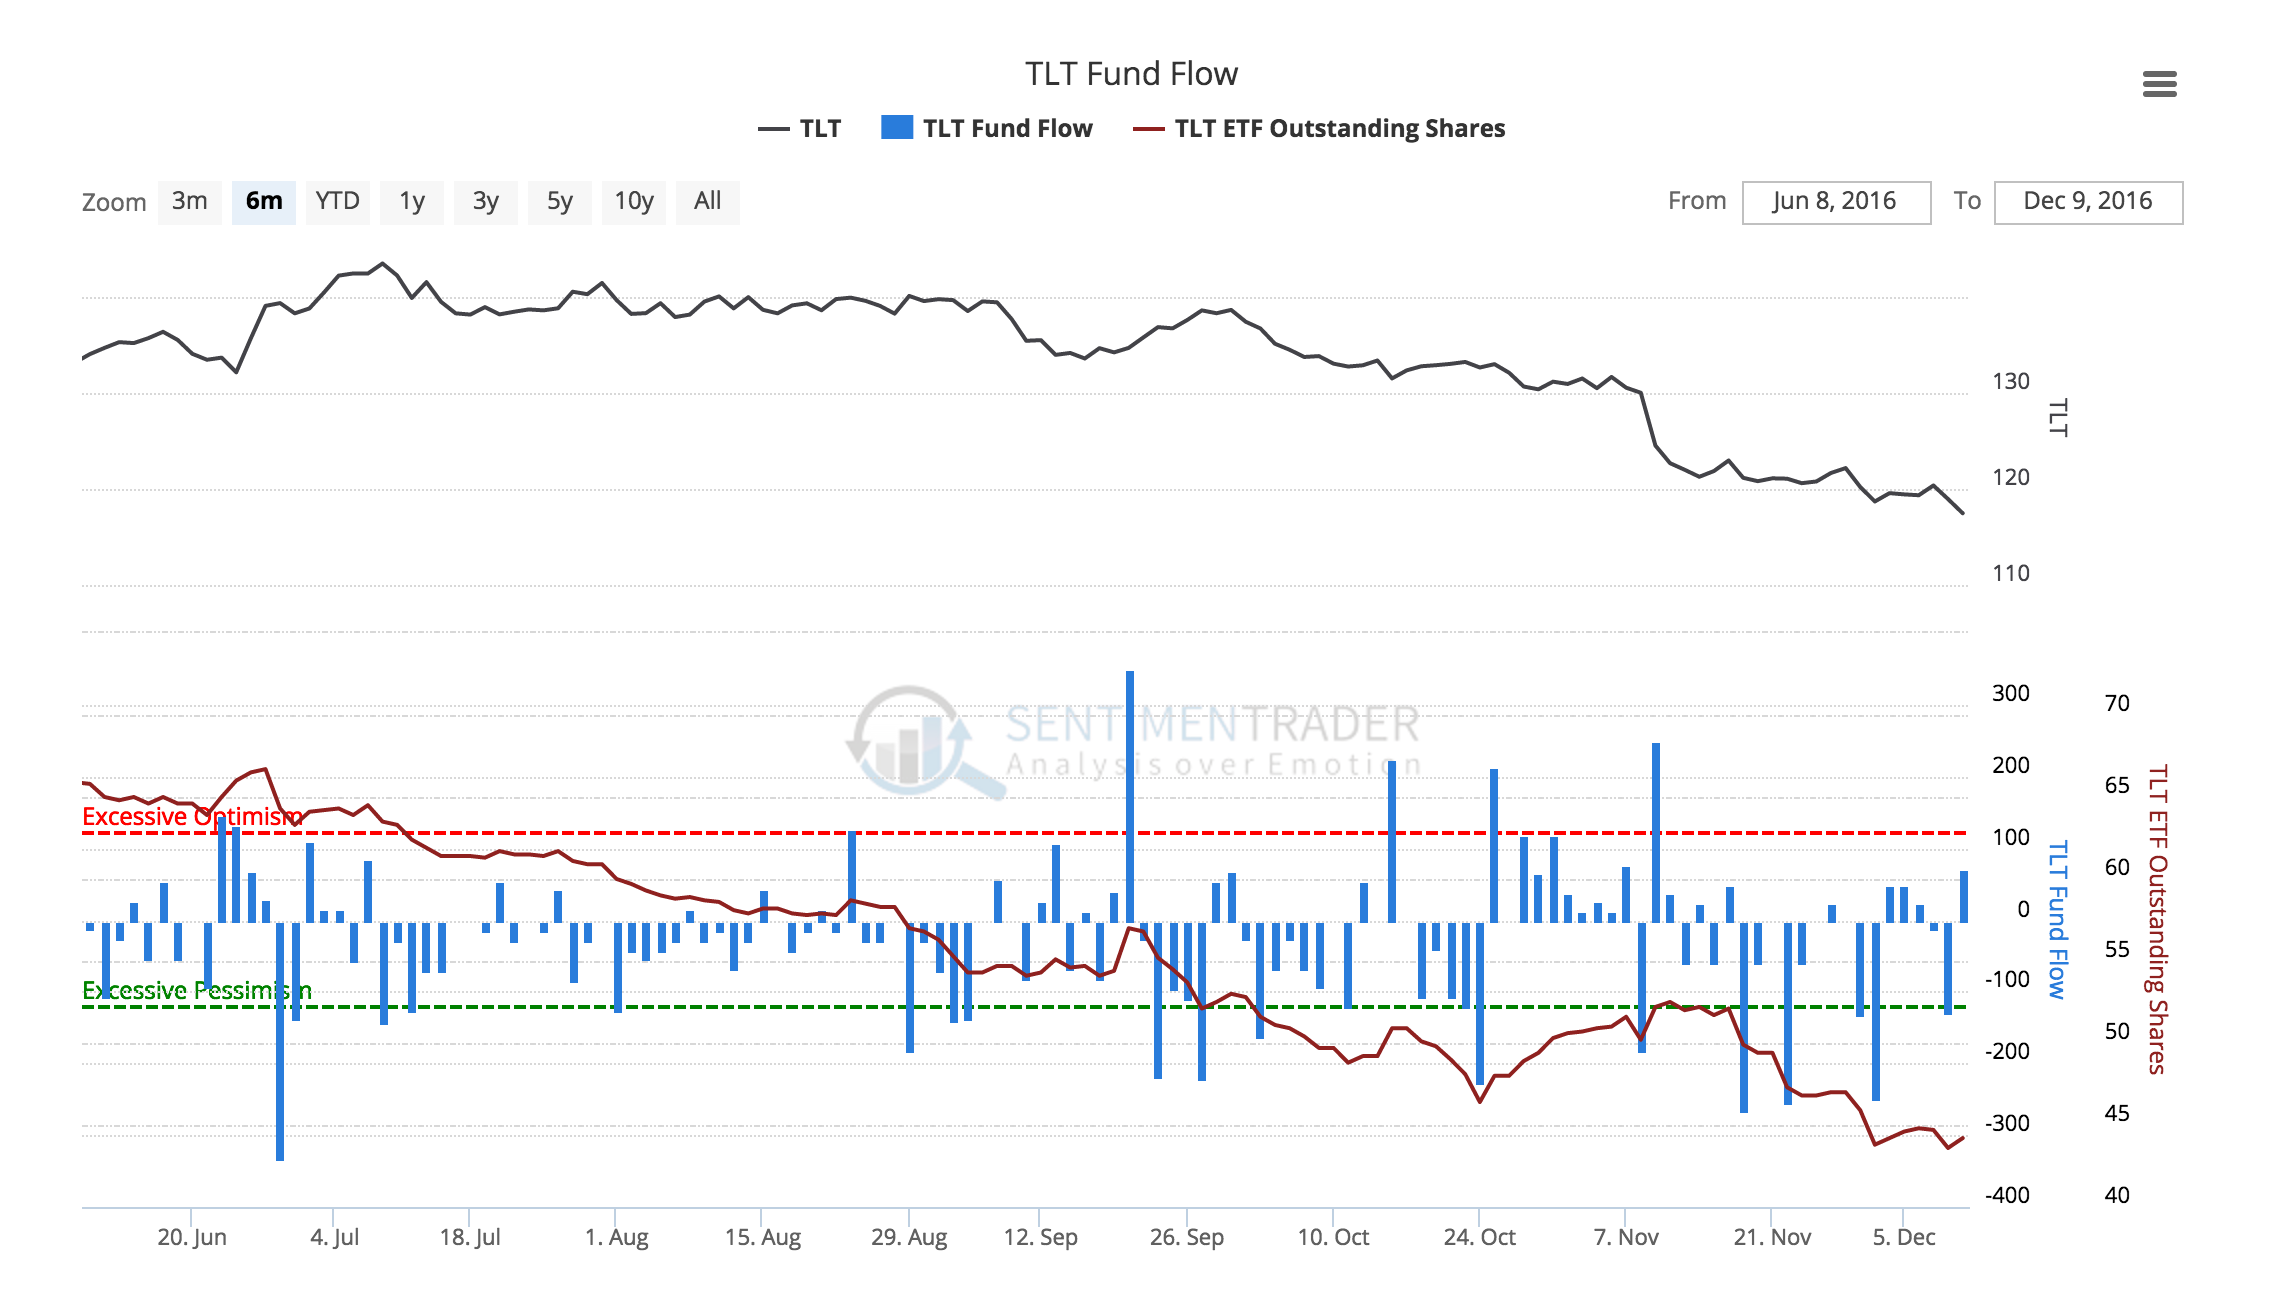 TLT Fund Flow with Shares Oustanding